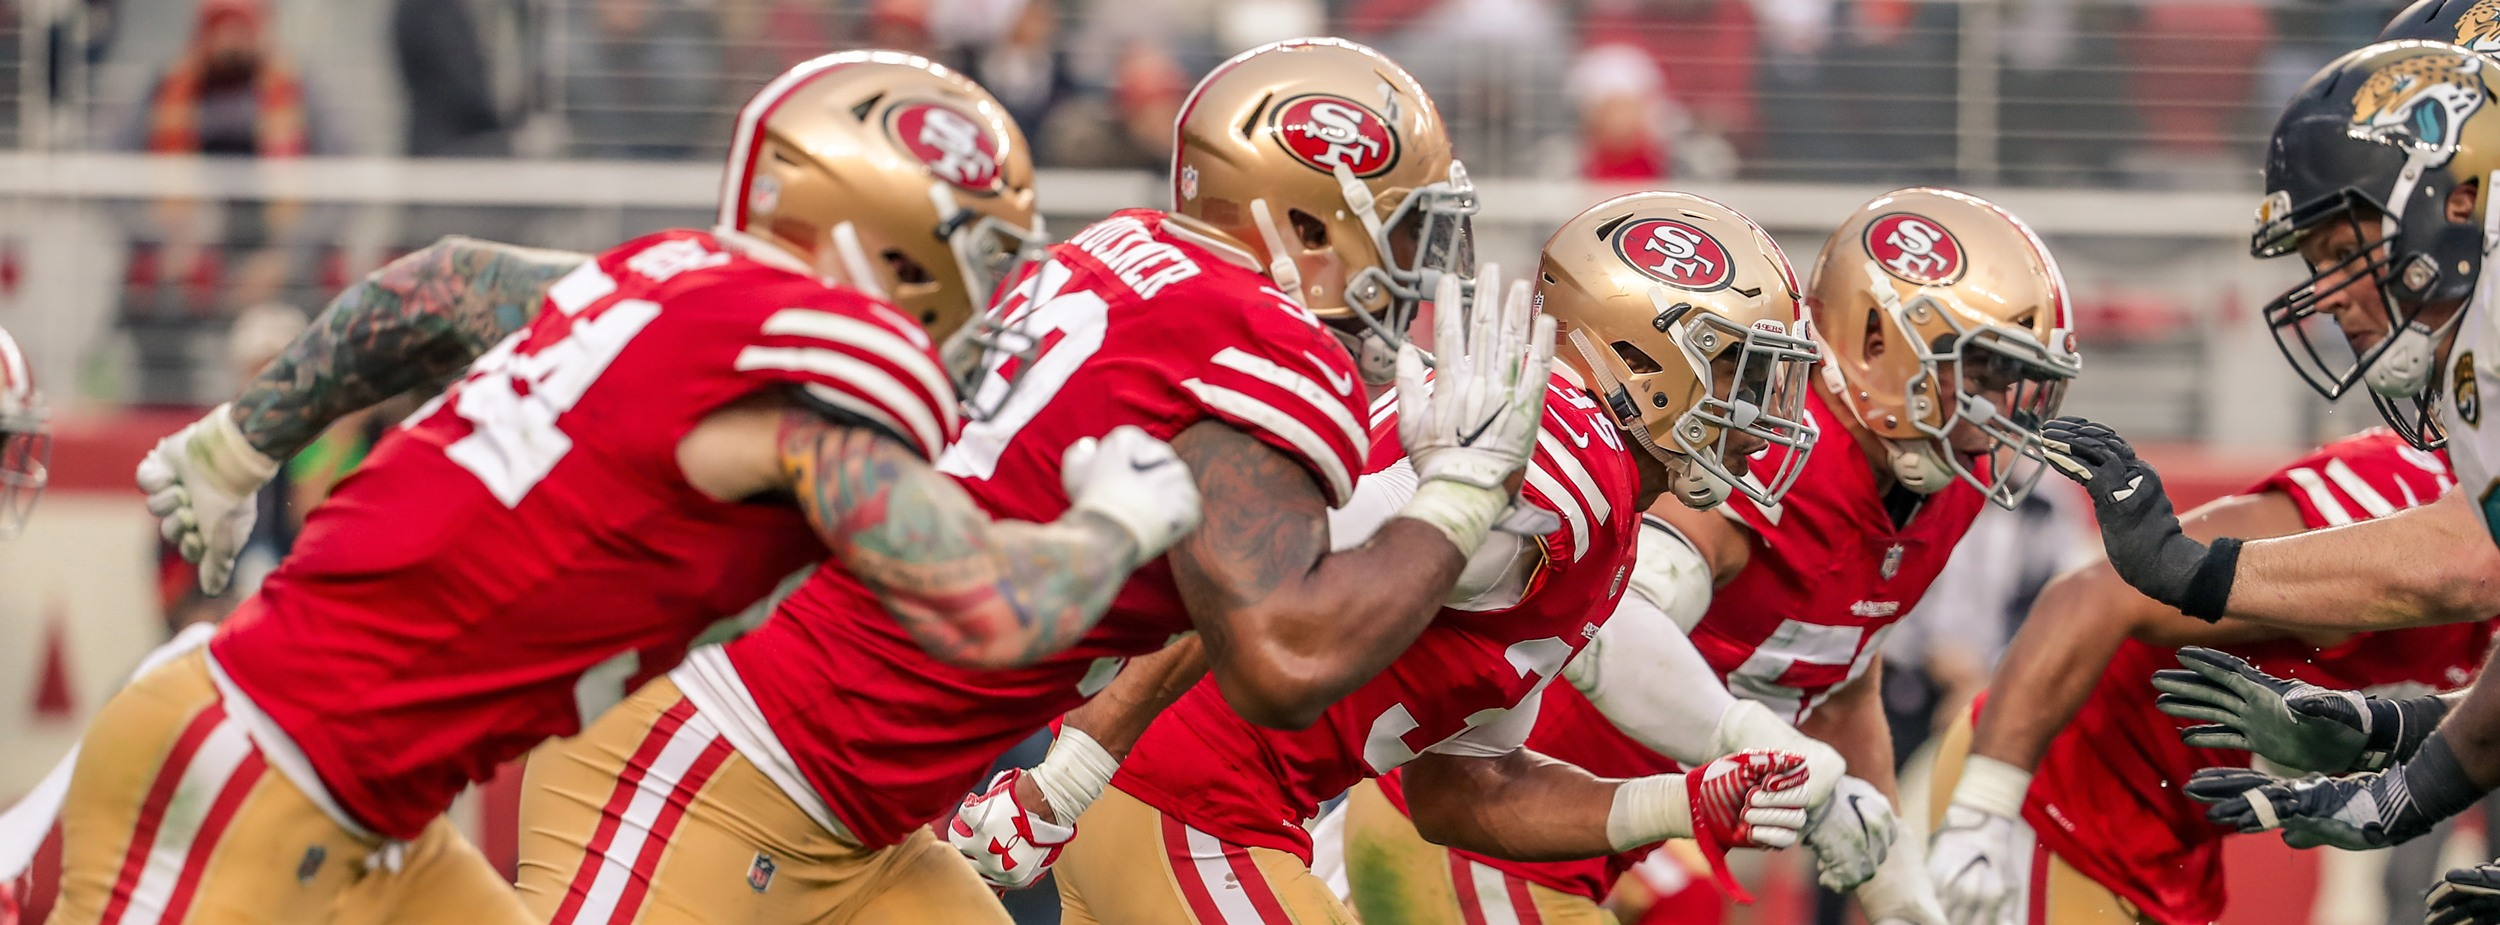 9aa03751 49ers.com | The Official Site of the San Francisco 49ers